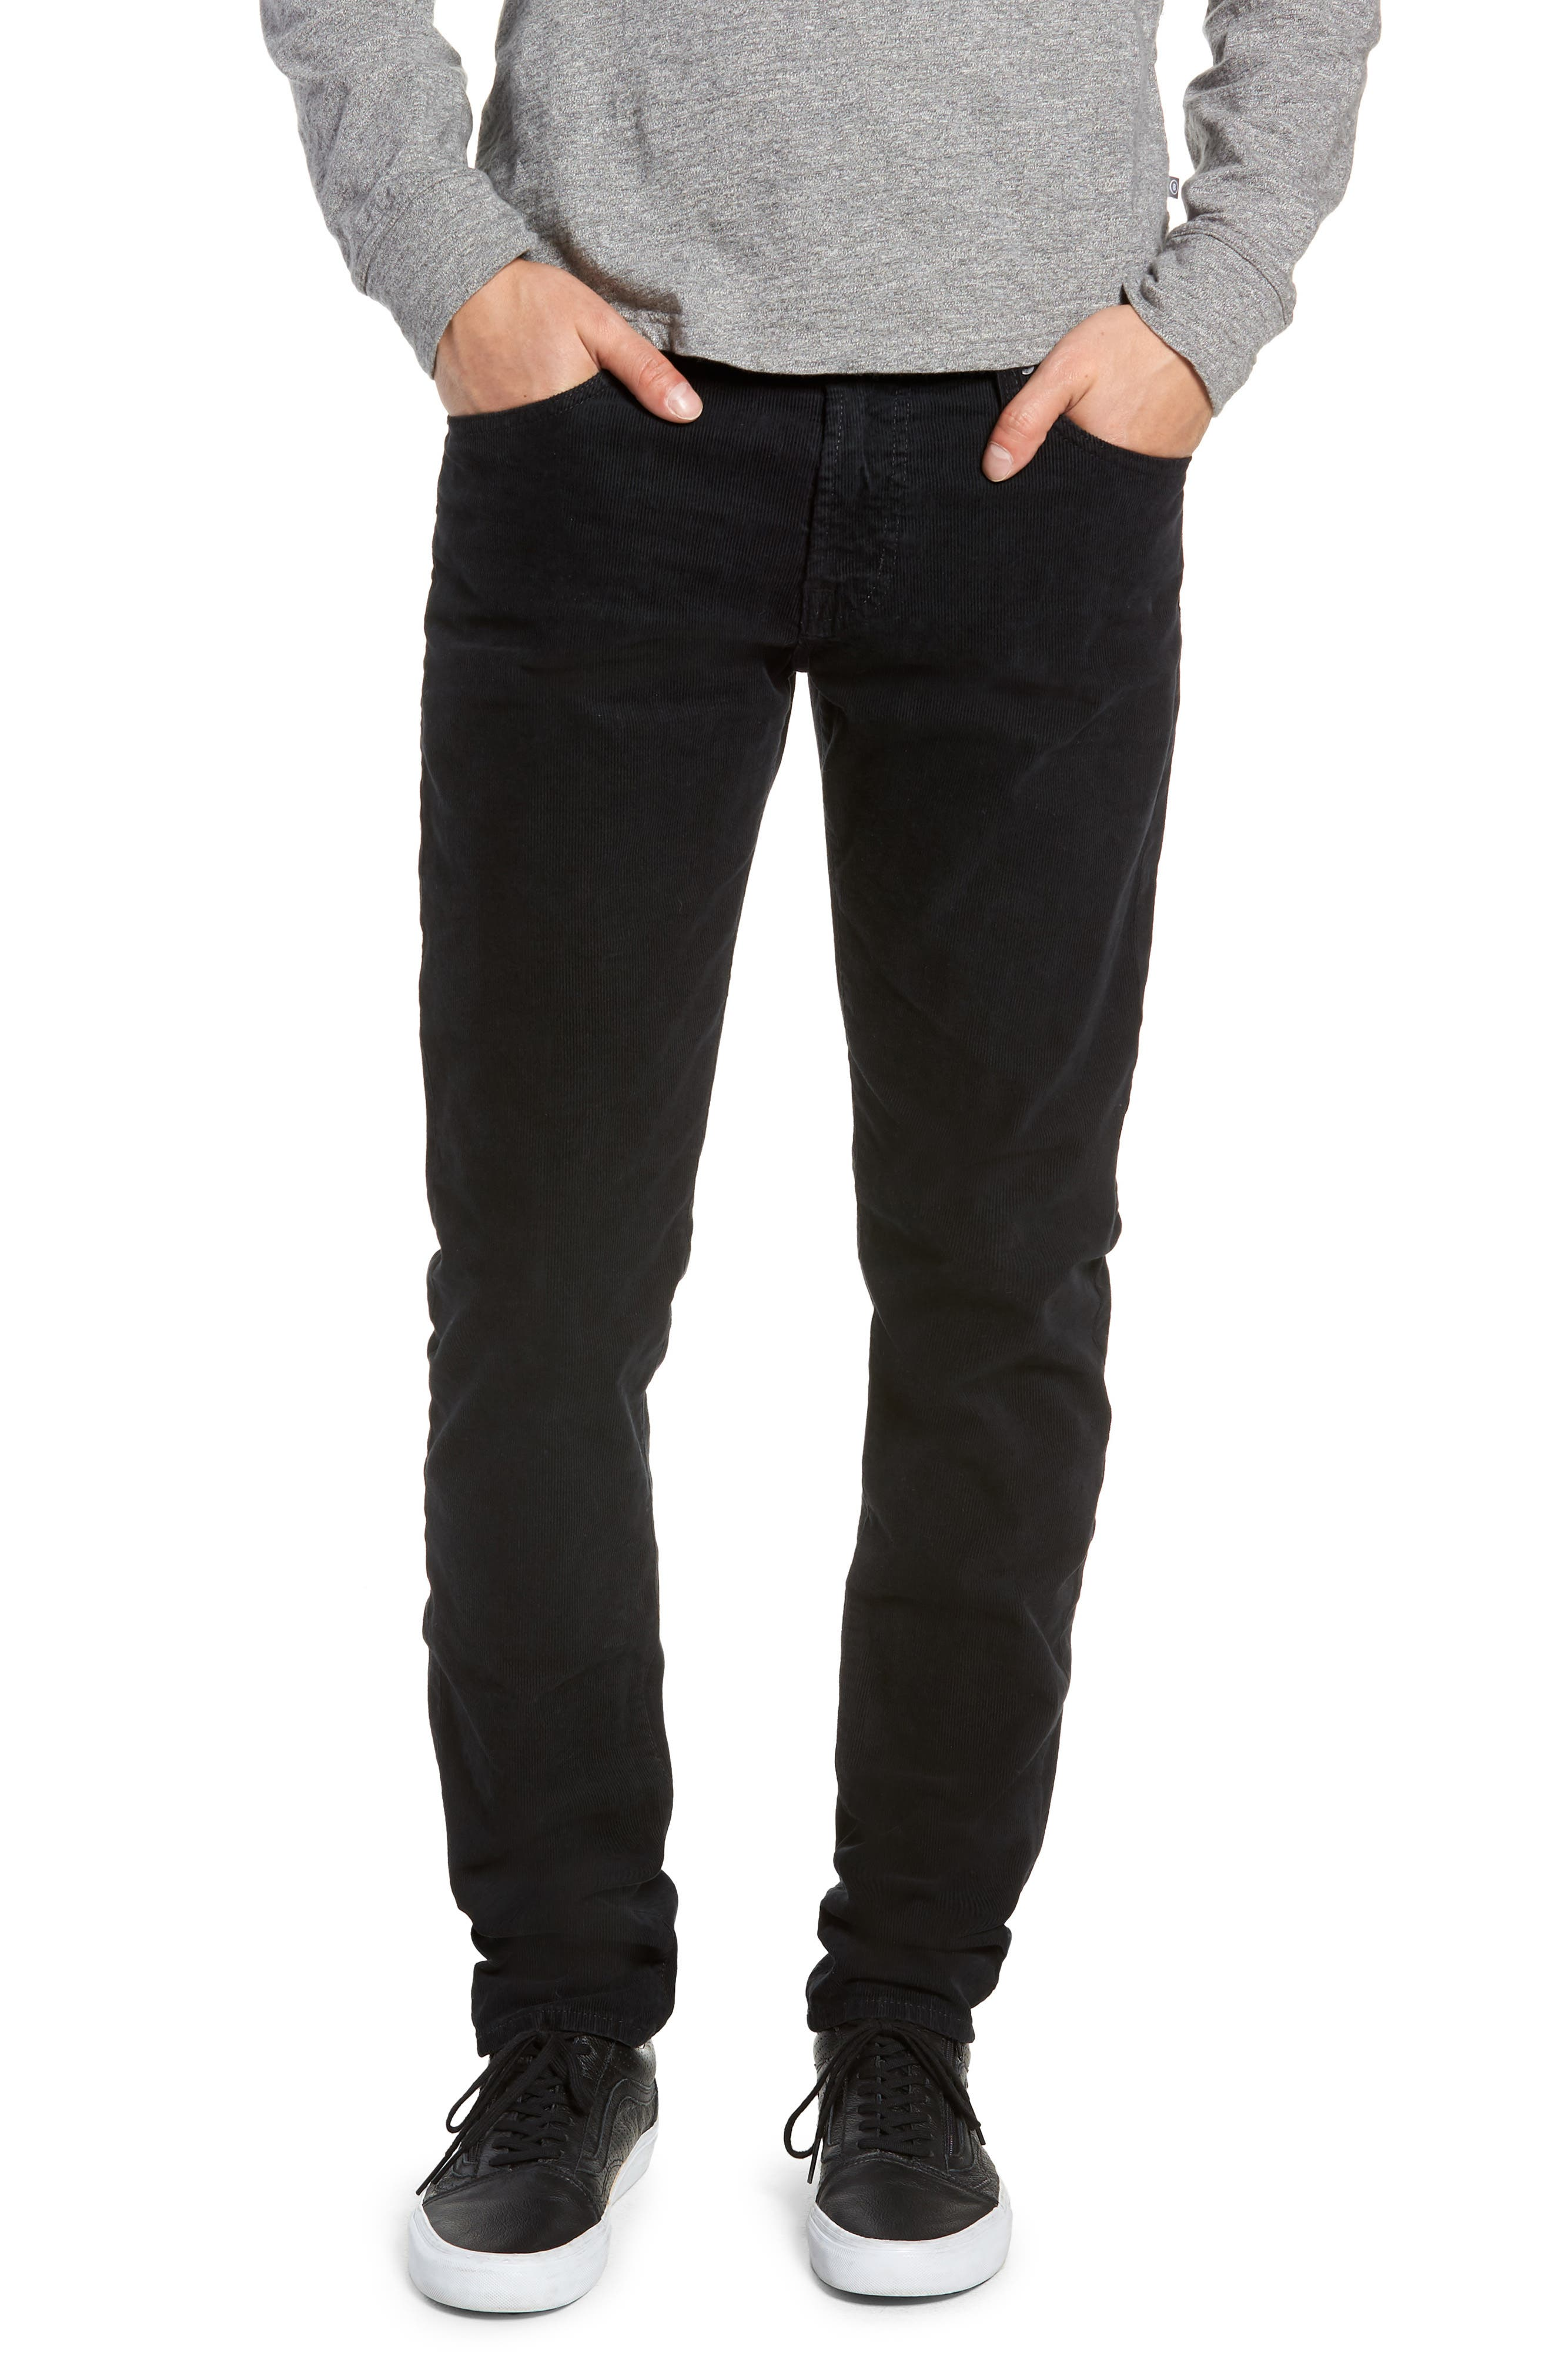 Dylan Skinny Fit Corduroy Pants,                         Main,                         color, SULFUR ASH BLACK